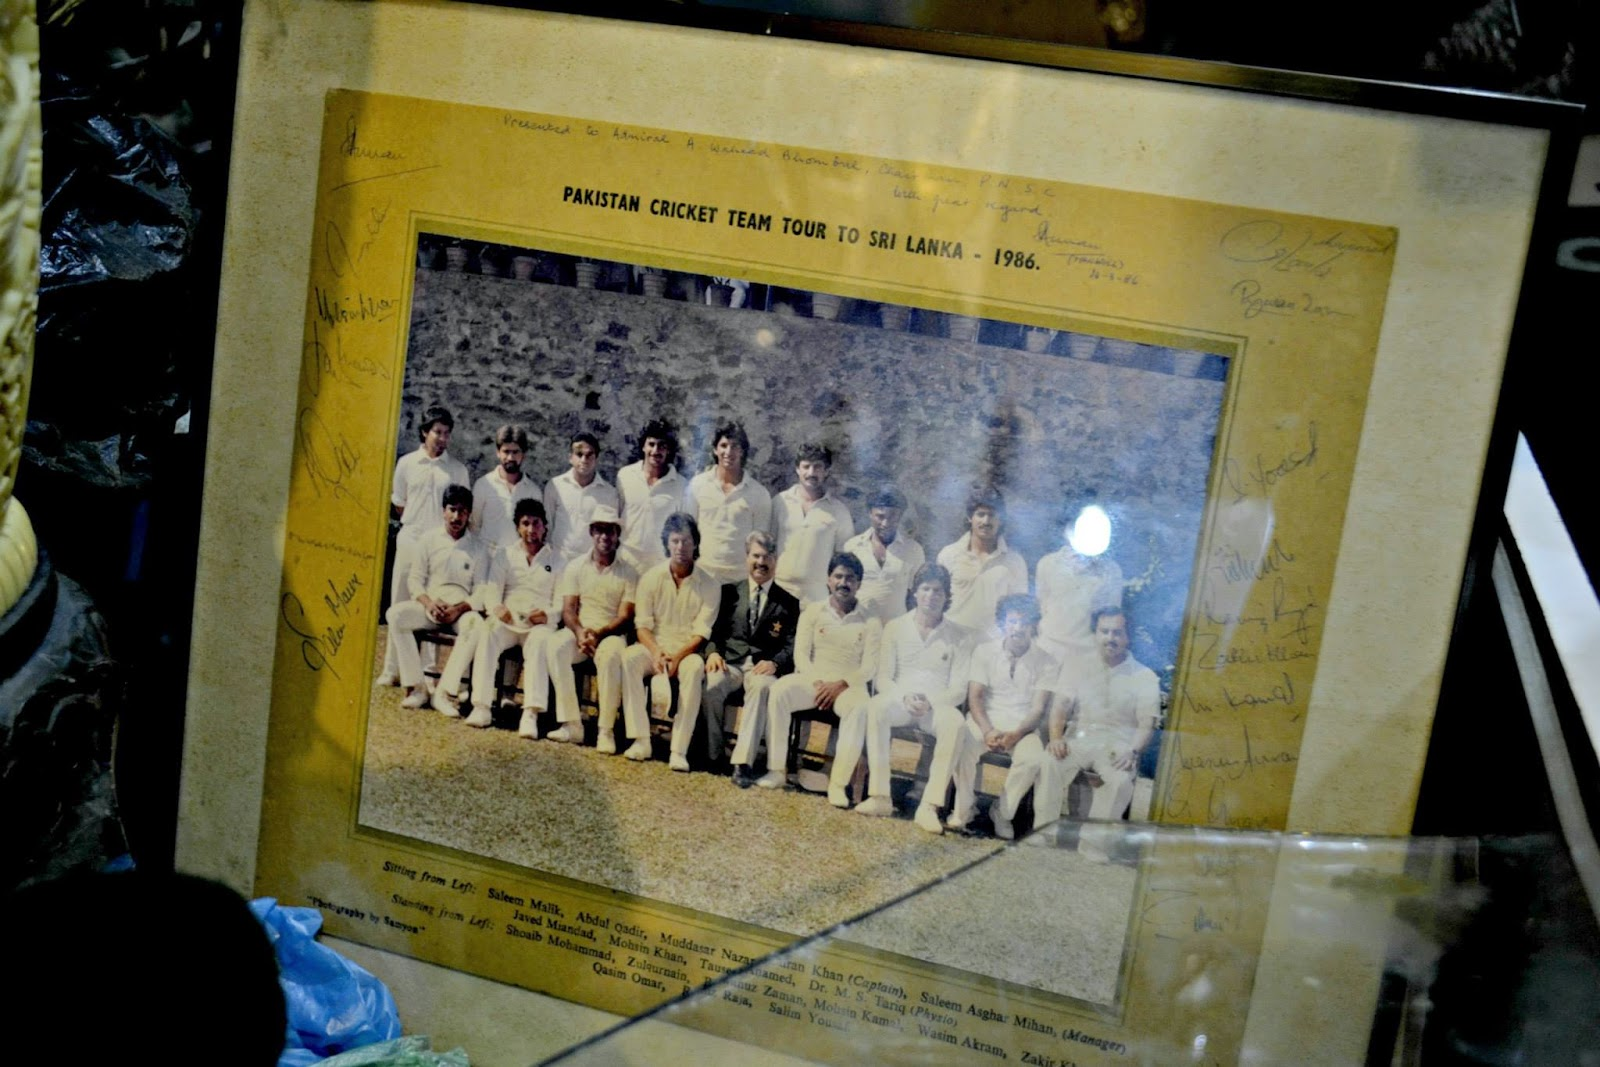 imran khan javed miandad cricket team photo